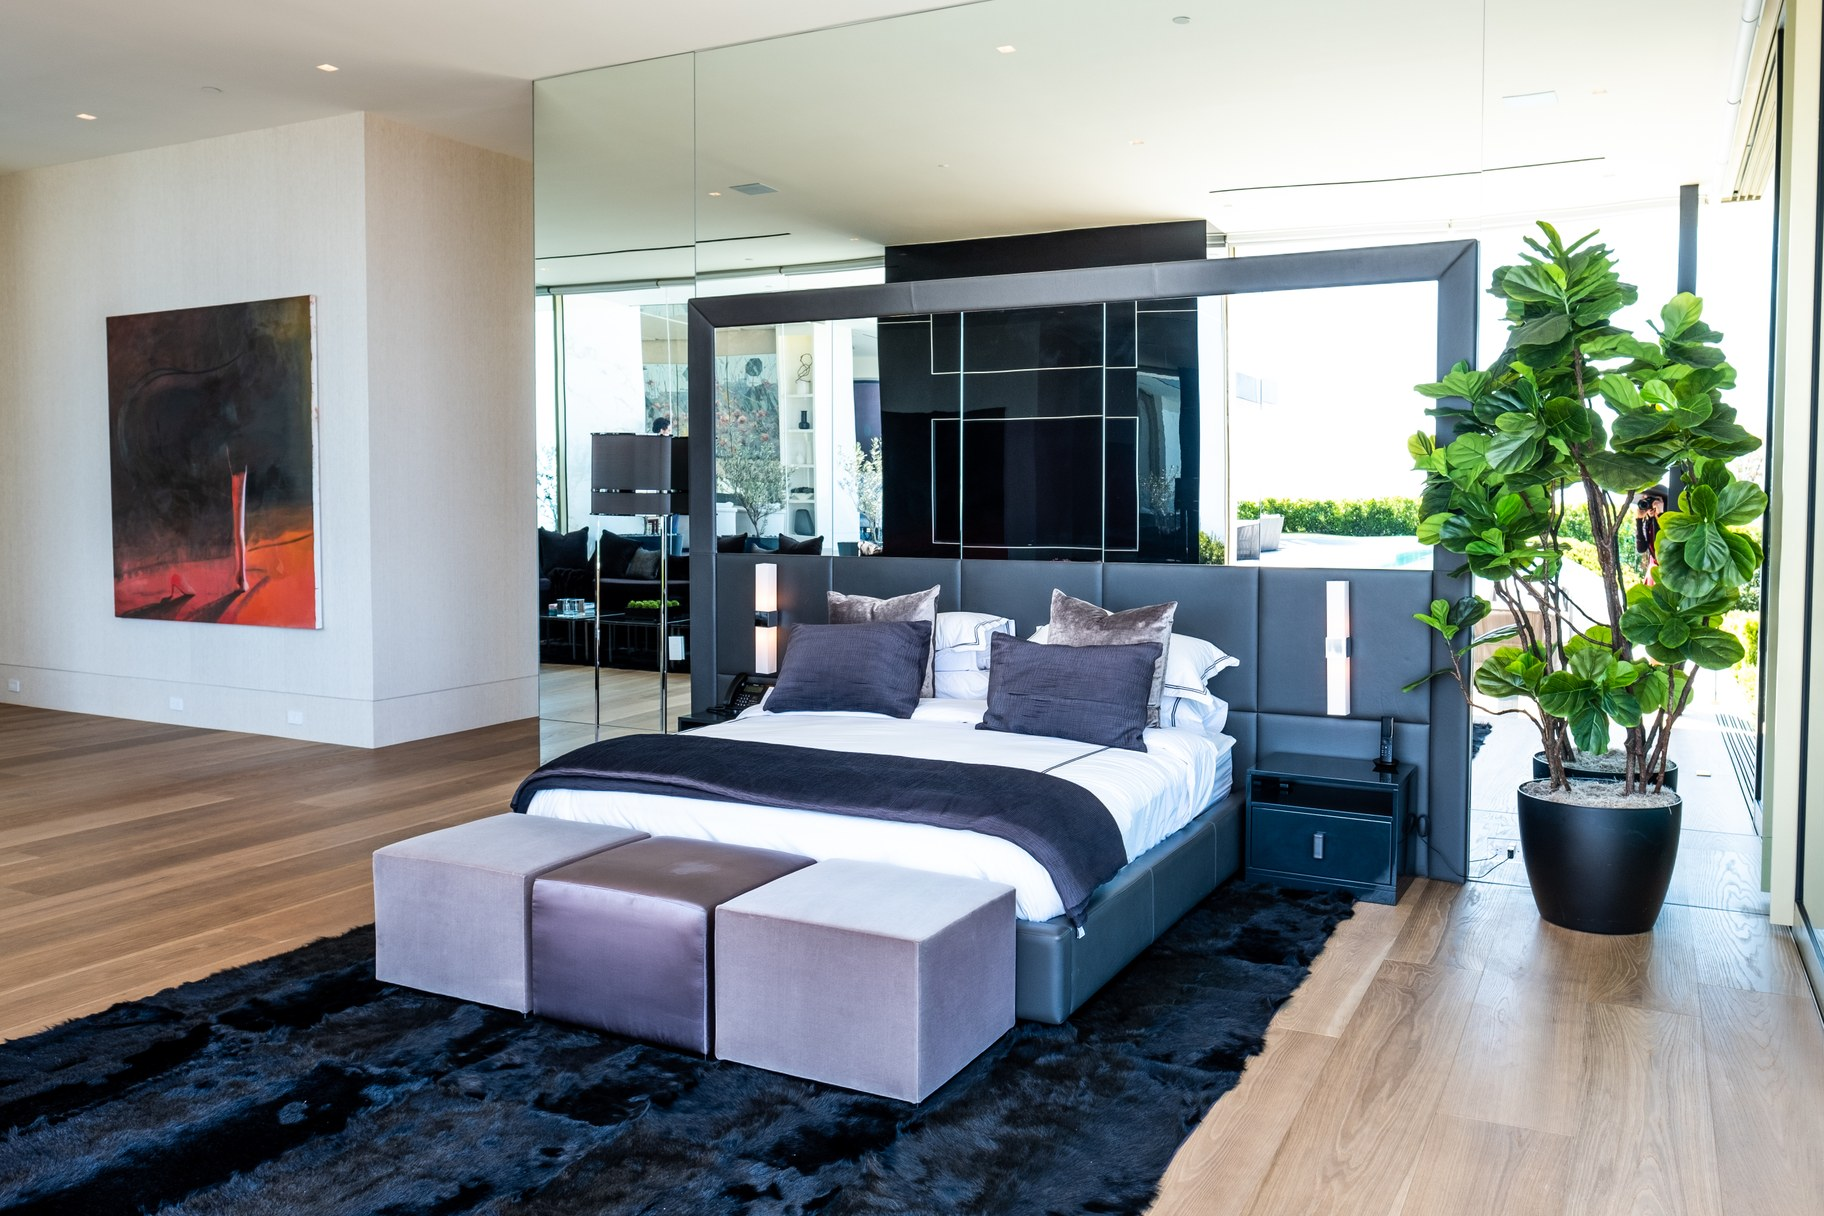 One of the many bedrooms at Opus.